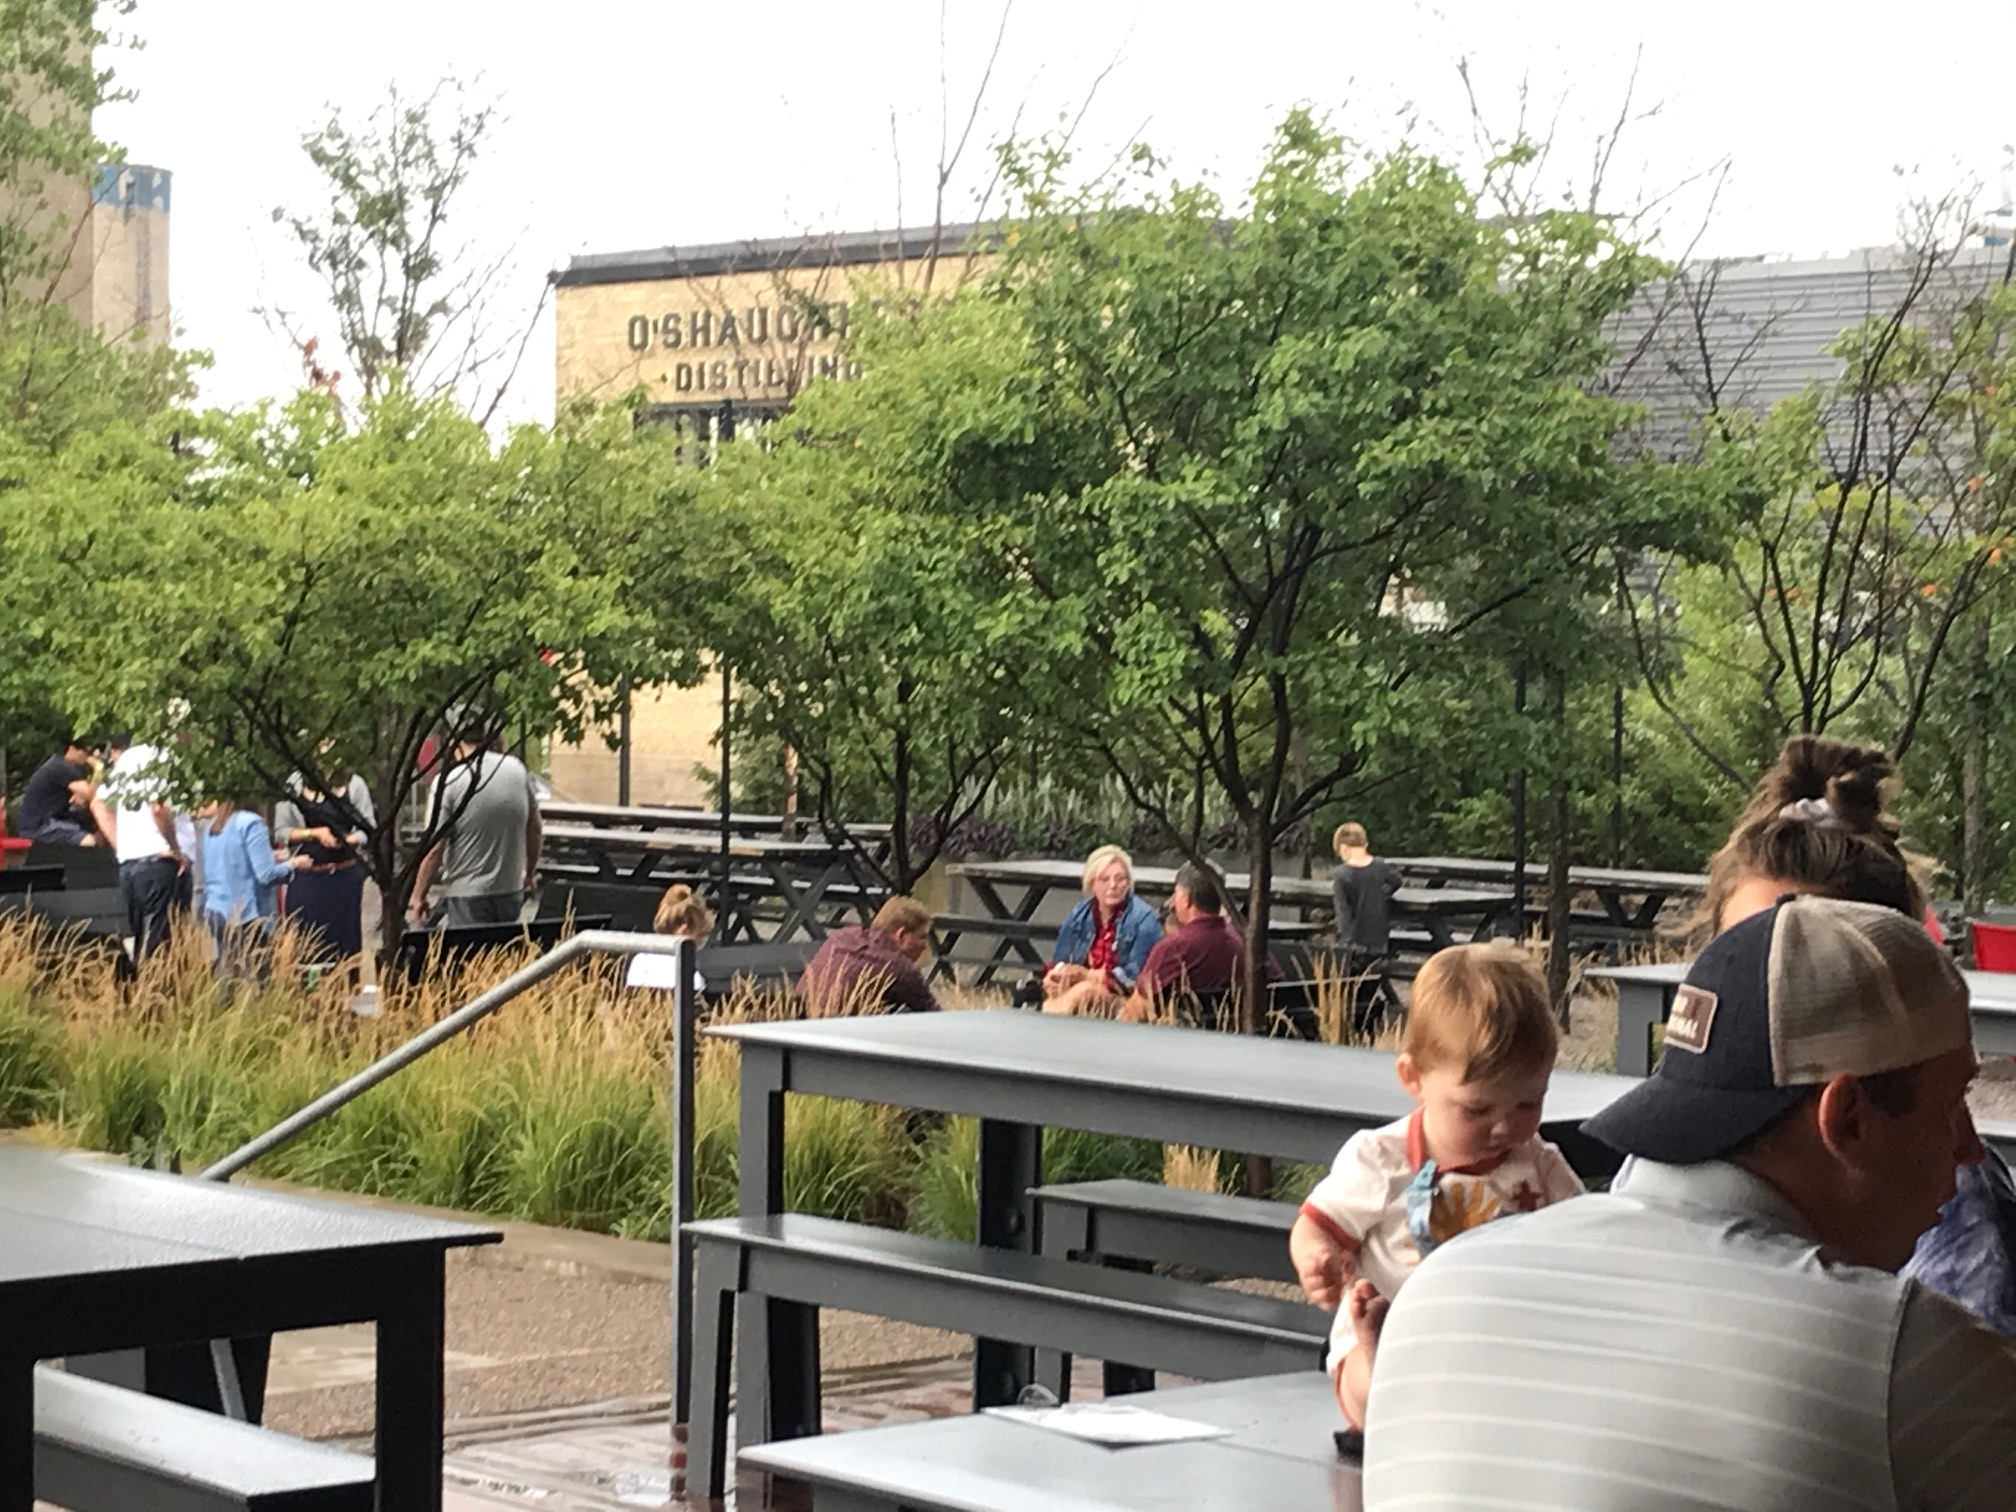 Surly outdoor seating in Minneapolis